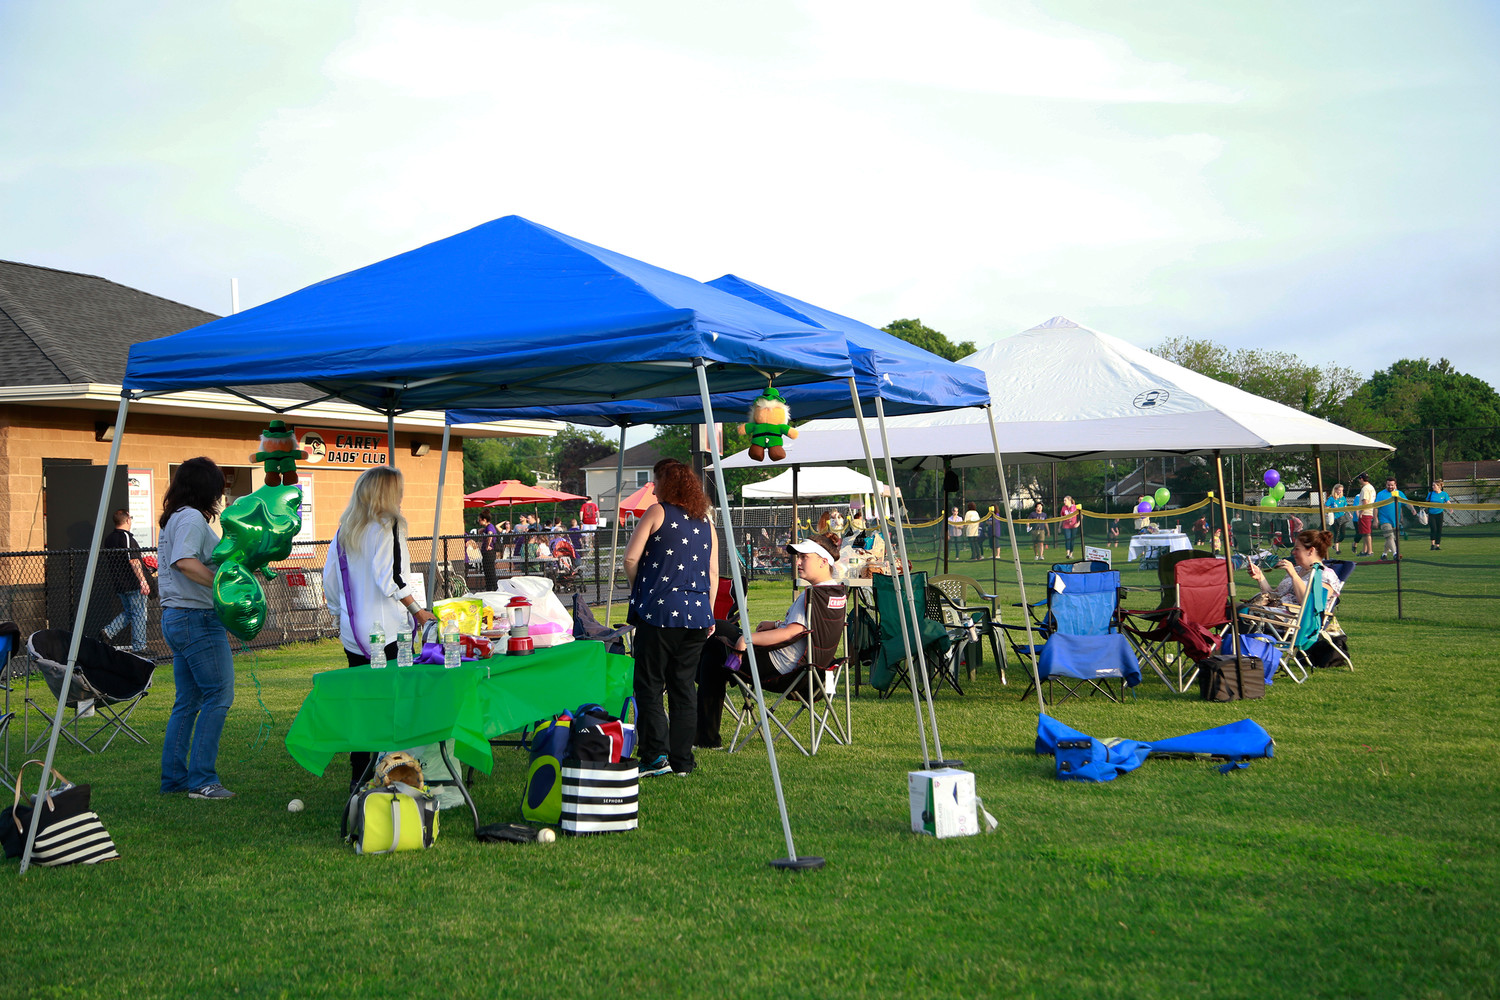 Relay participants set up their tents on Carey's field to prepare for an entire night of walking the track.